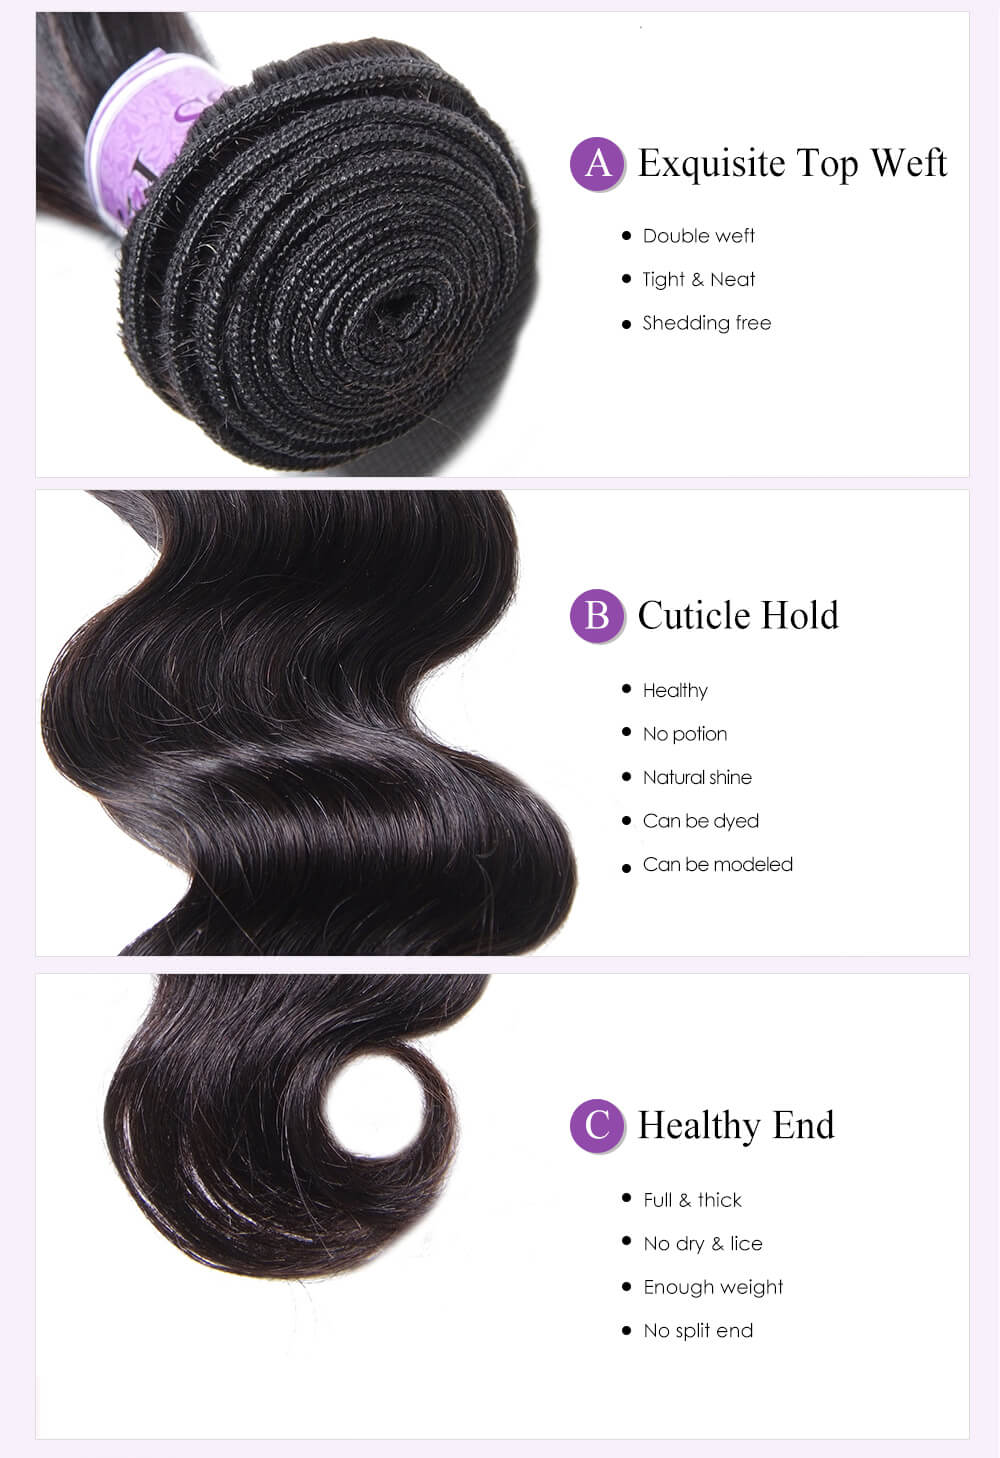 Unice kysiss Indian body wave 4 bundles hair